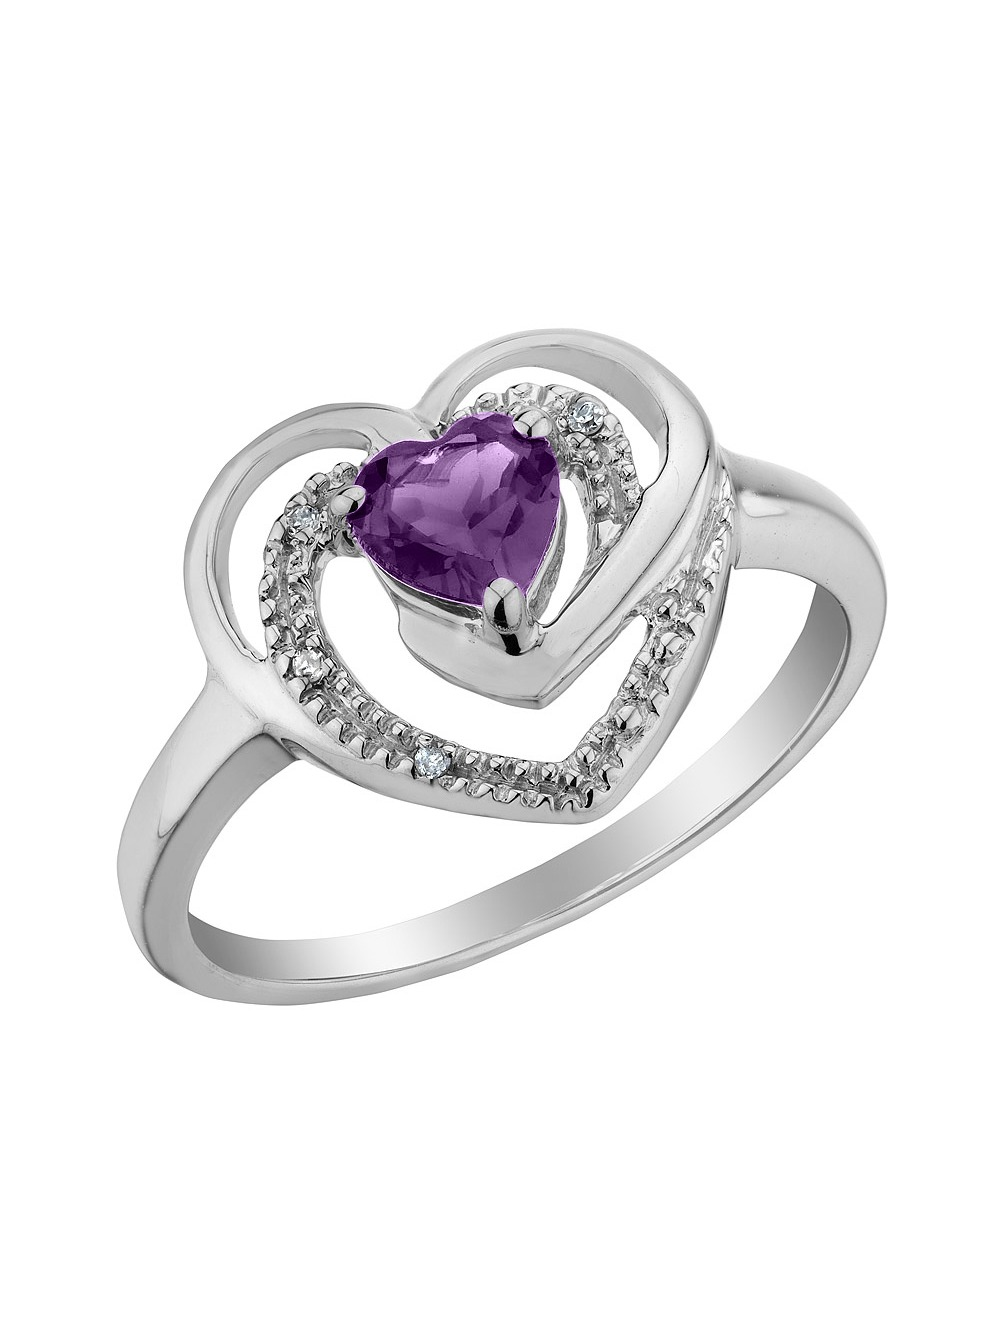 Amethyst Heart Ring with Diamonds 1/3 Carat (ctw) in Sterling Silver